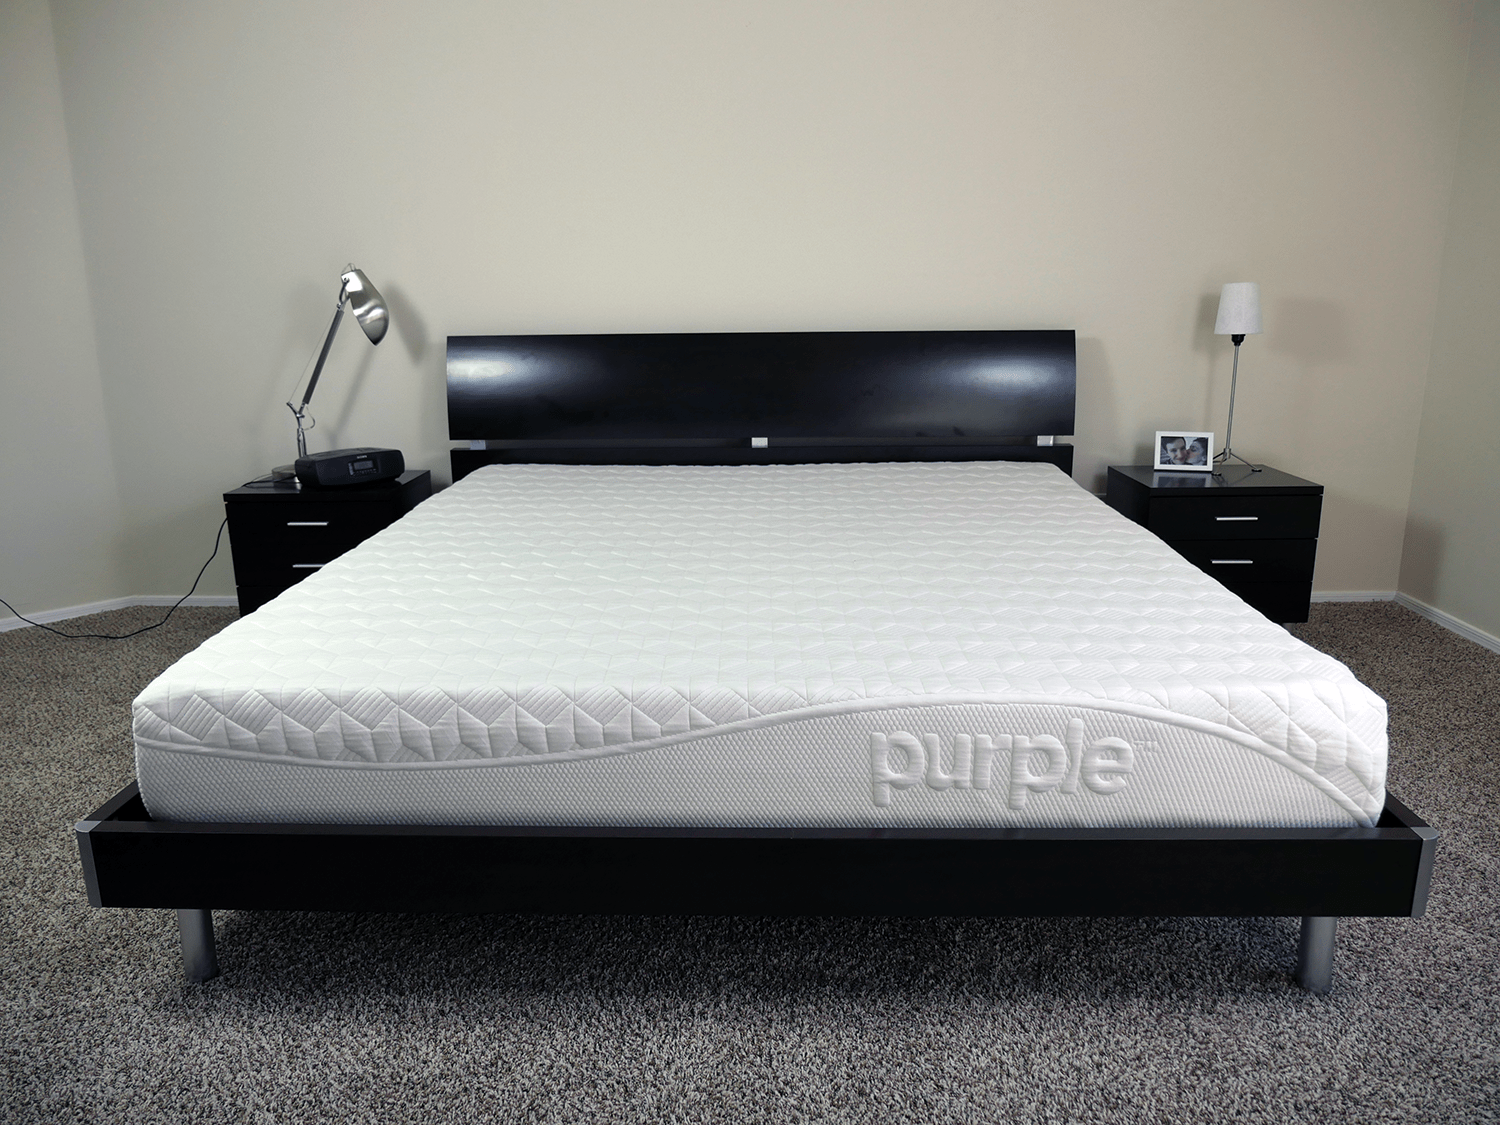 GhostBed vs. Purple Mattress Review | Sleepopolis